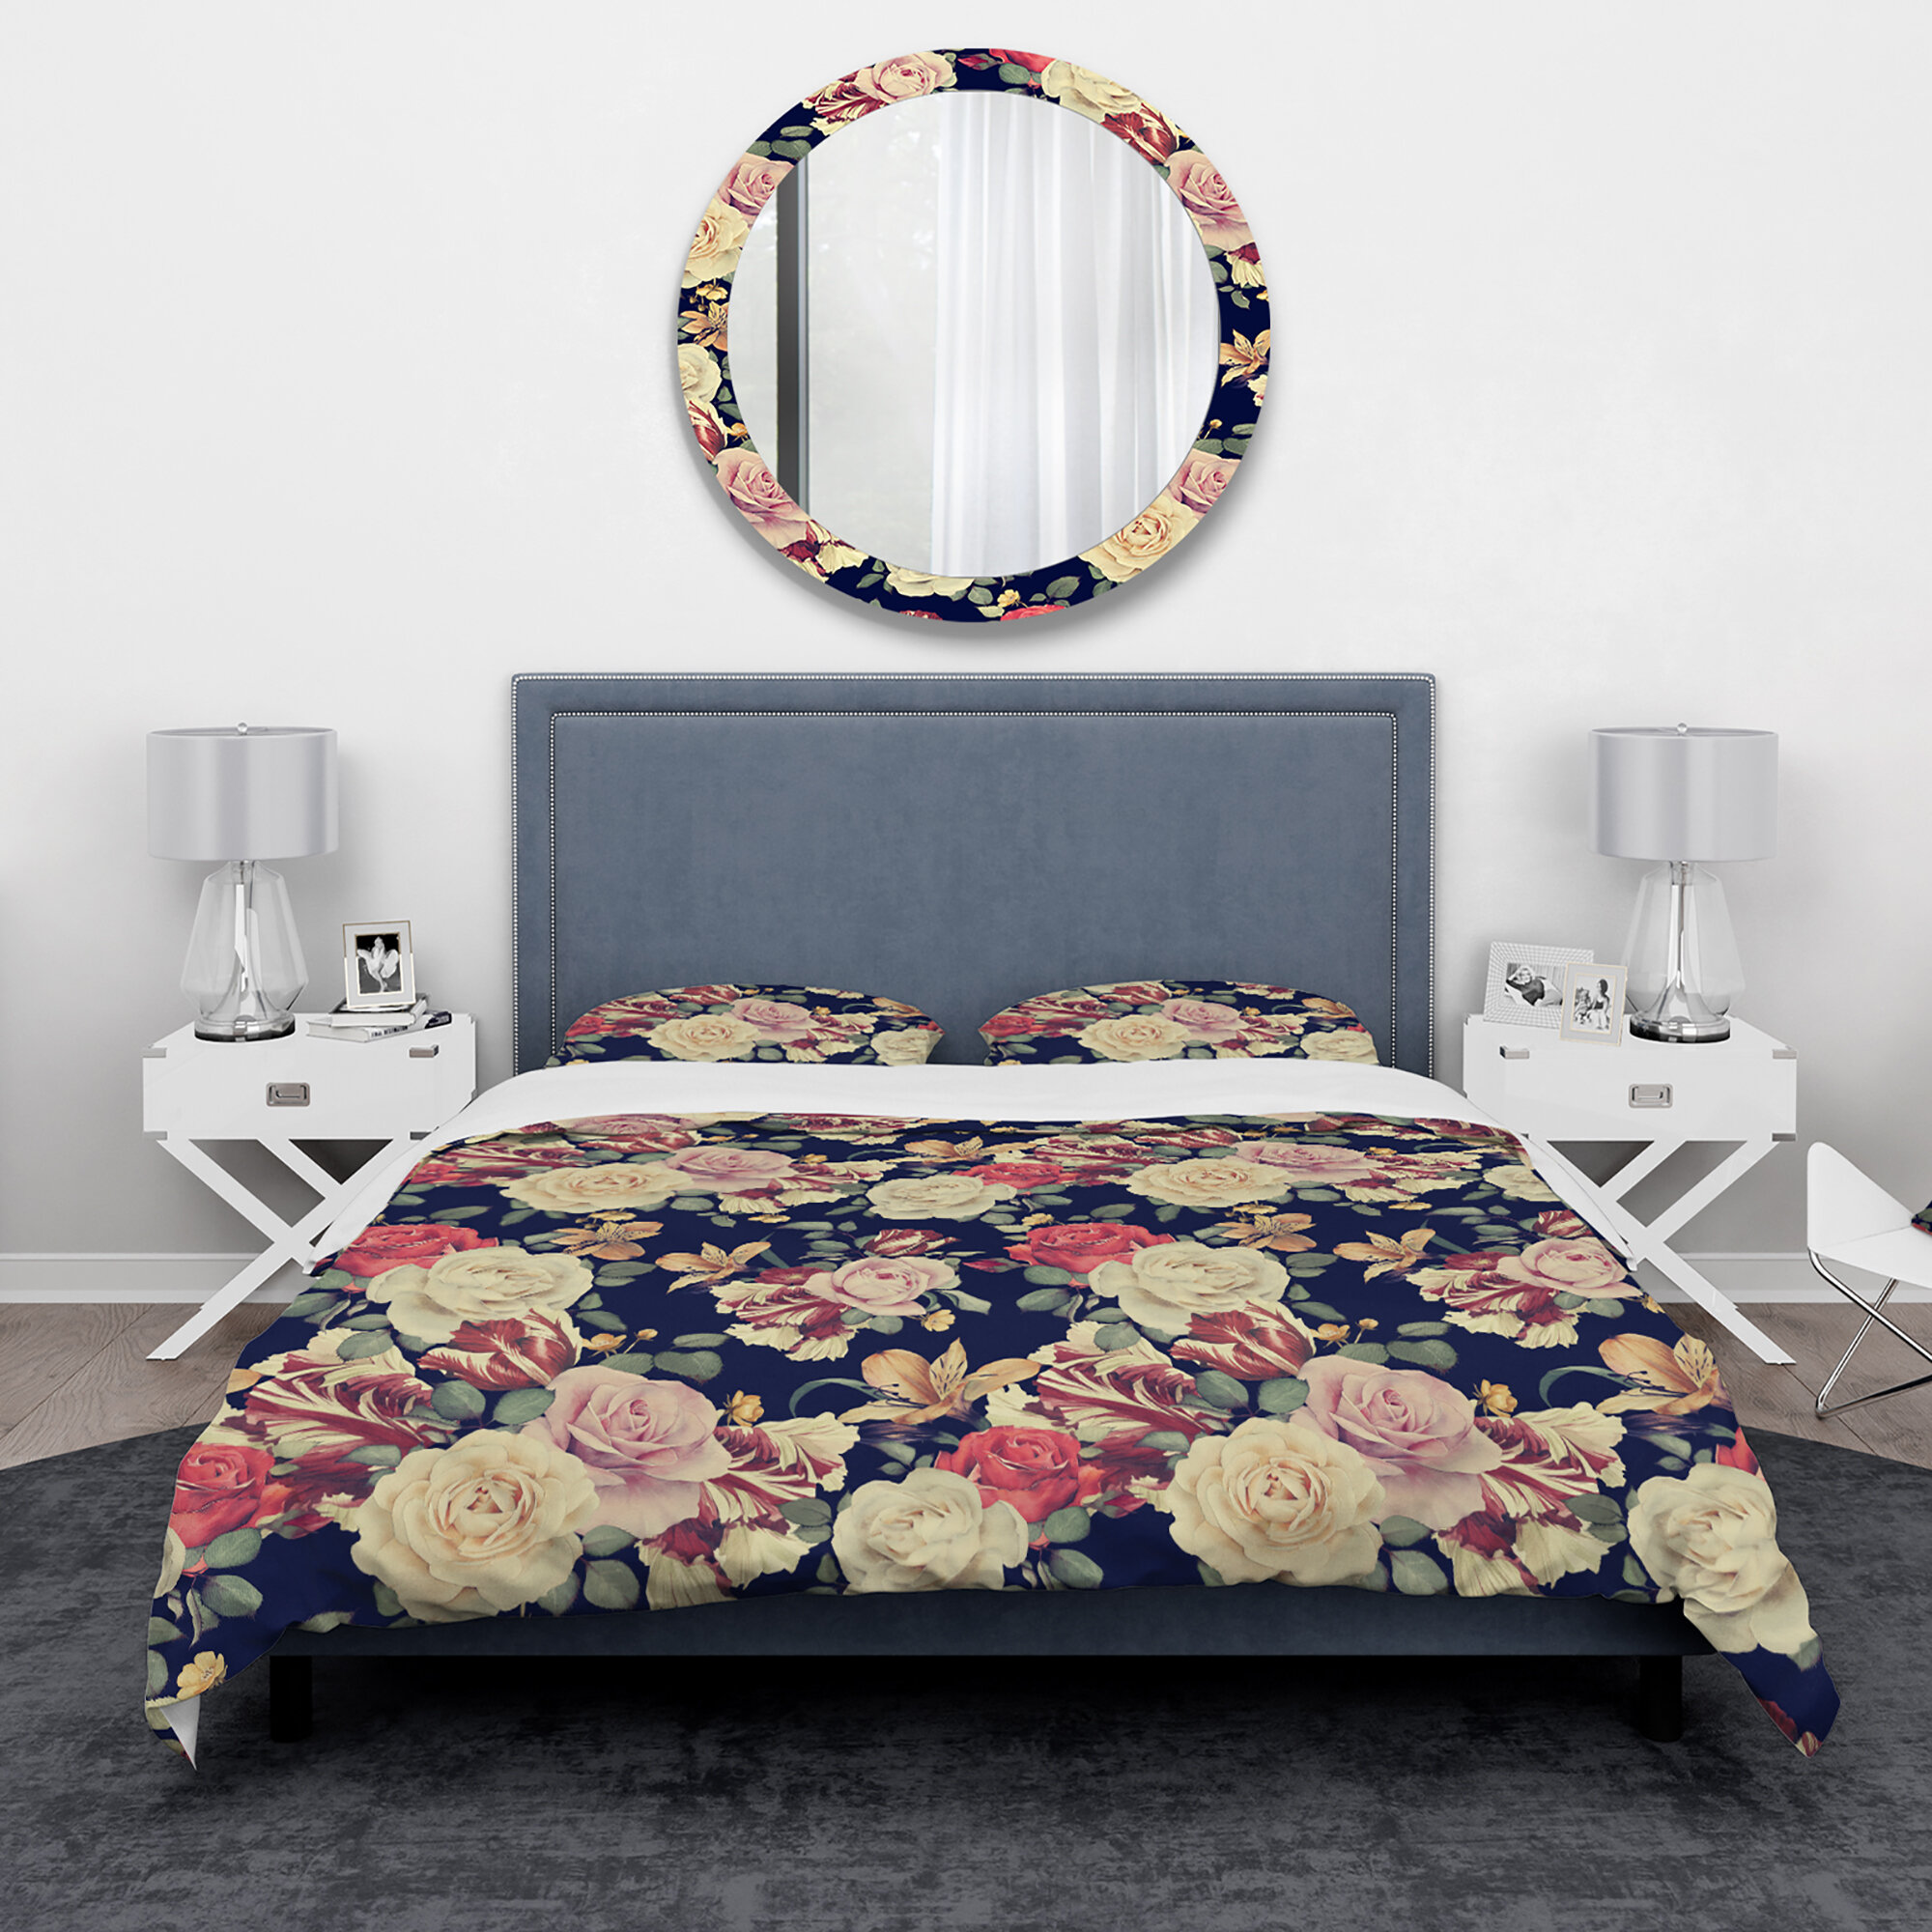 East Urban Home Bohemian And Eclectic Duvet Cover Set Wayfair Ca